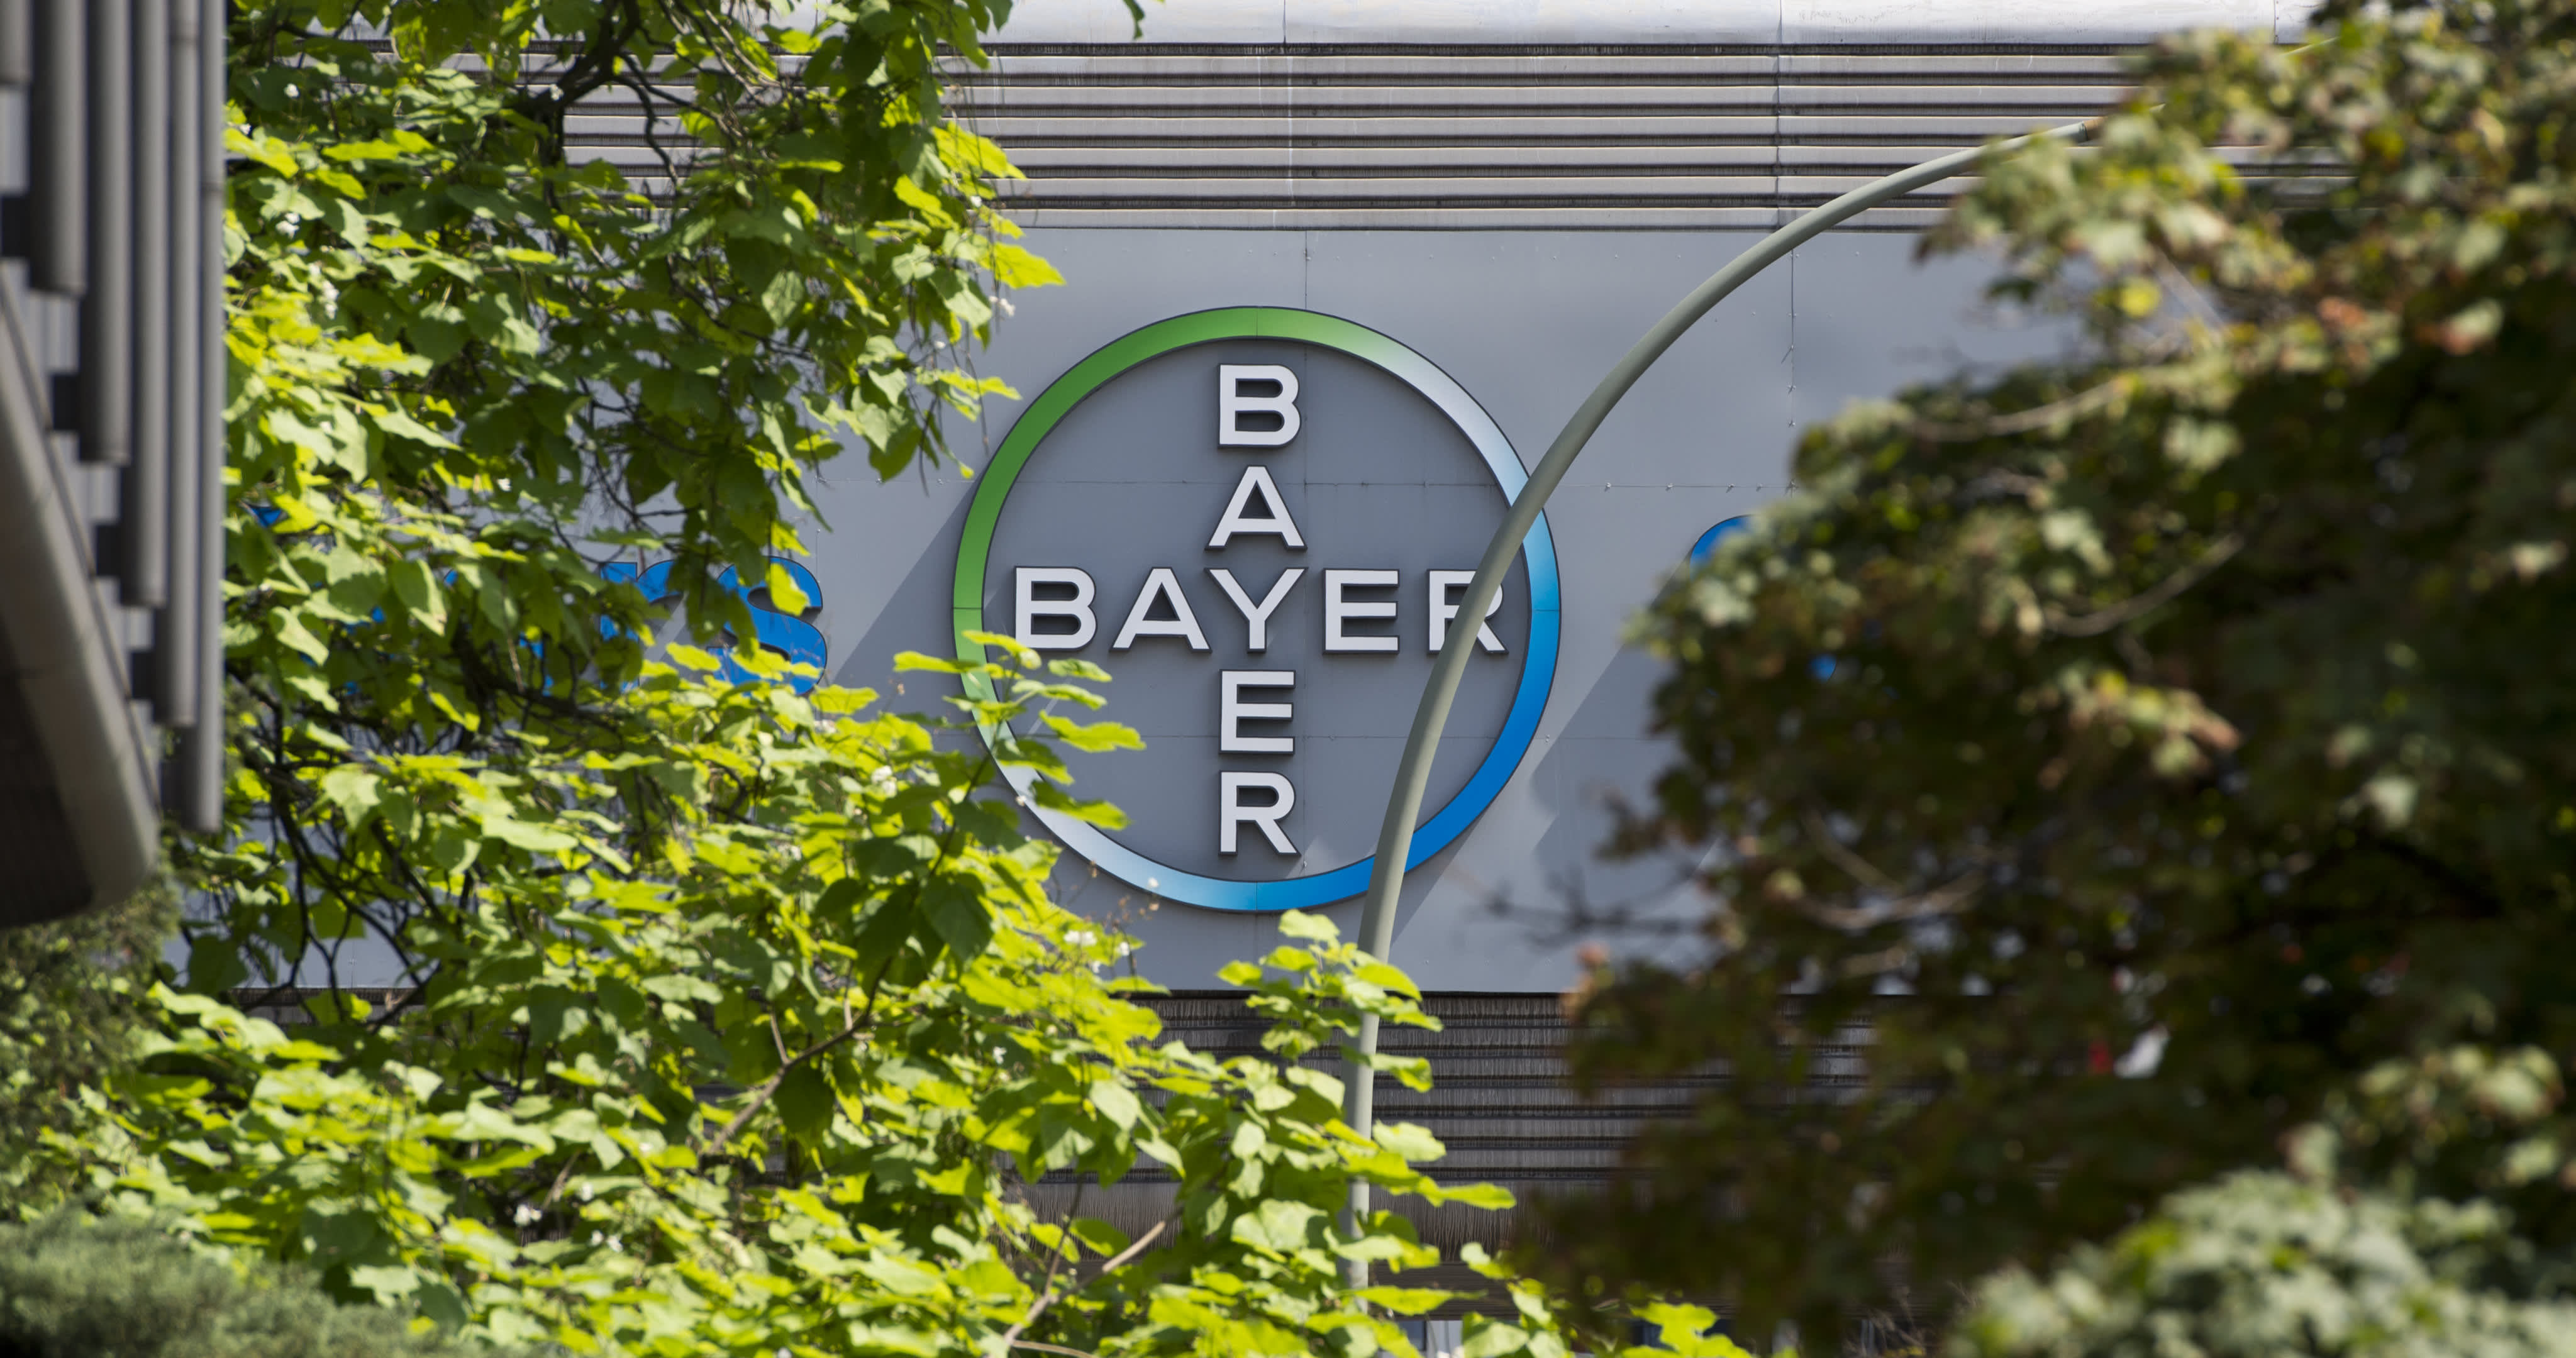 No plans to acquire rival Syngenta: Bayer CEO